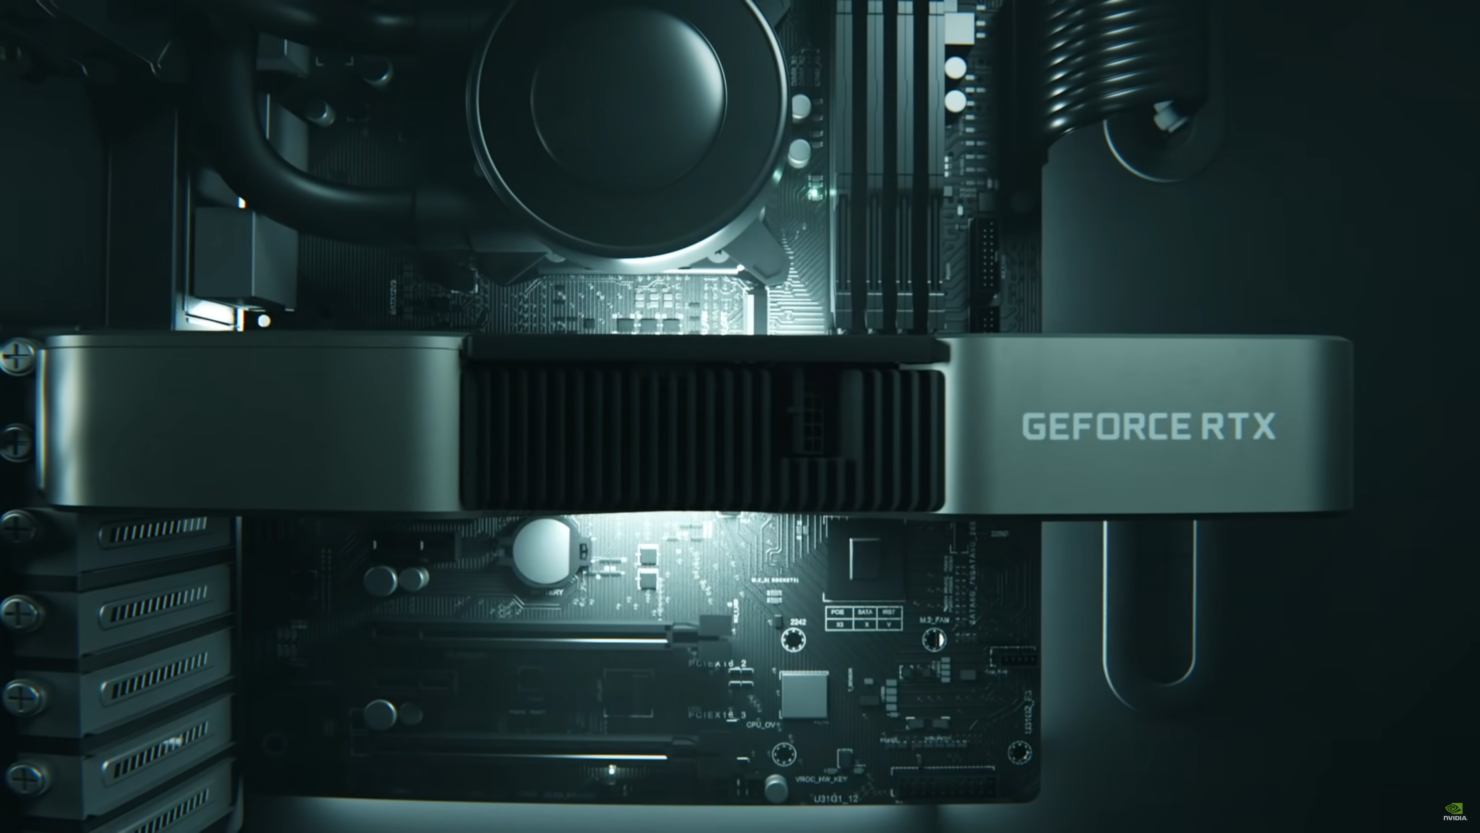 nvidia-calls-ampere-geforce-rtx-30-series-graphics-cards-their-best-launch-ever,-more-gamers-buying-high-end-gpus